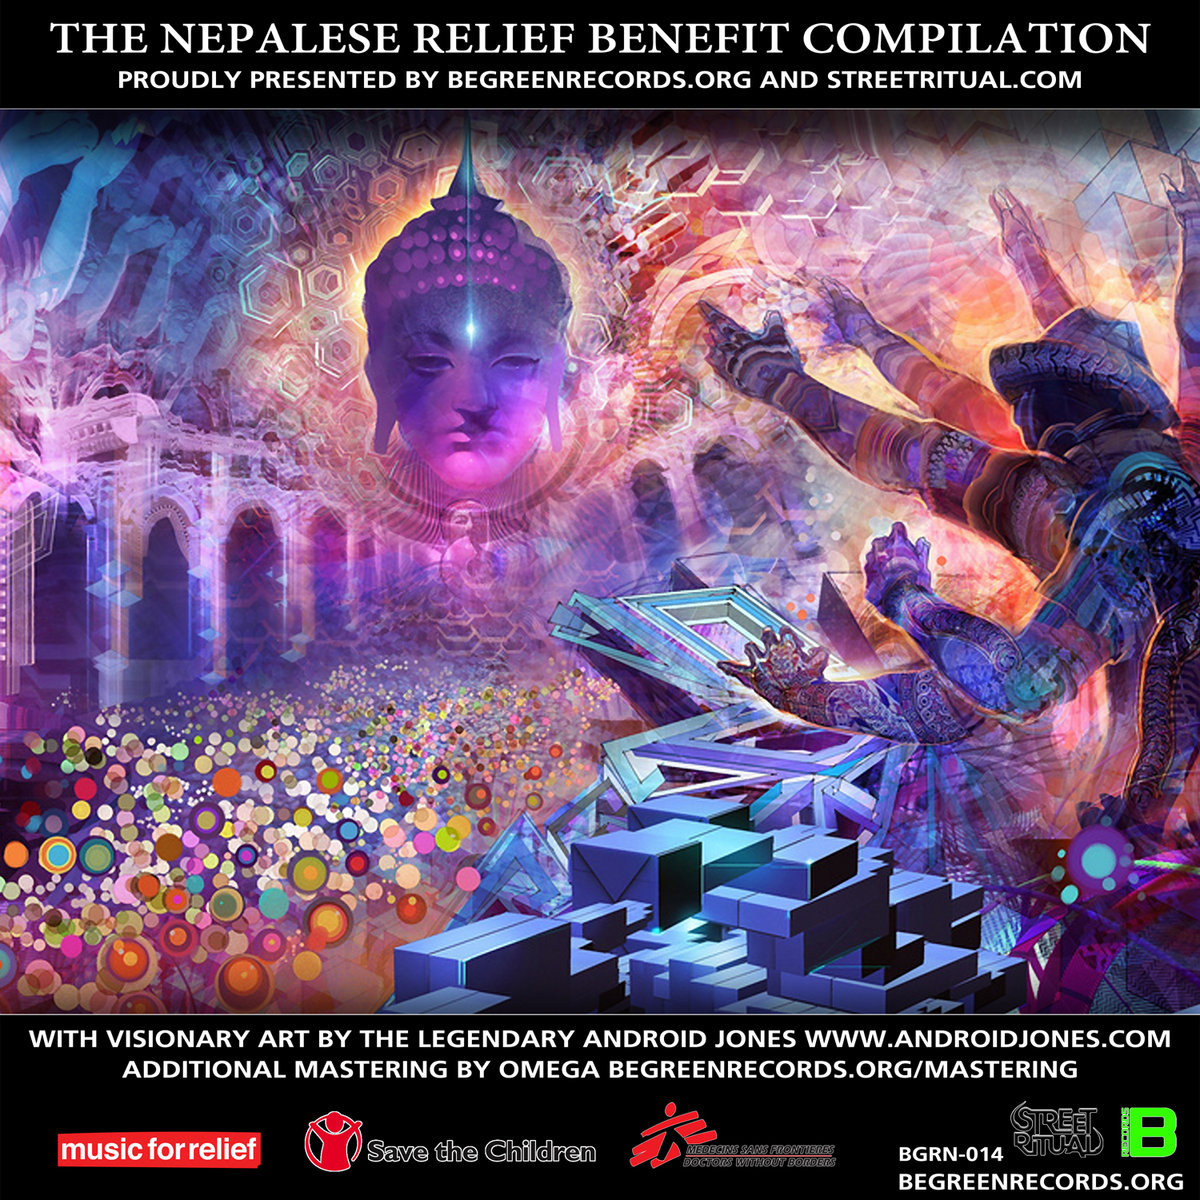 U9lift - Dream of Sleep @ 'Various Artists - The Nepalese Relief Benefit Compilation' album (bass, electronic)